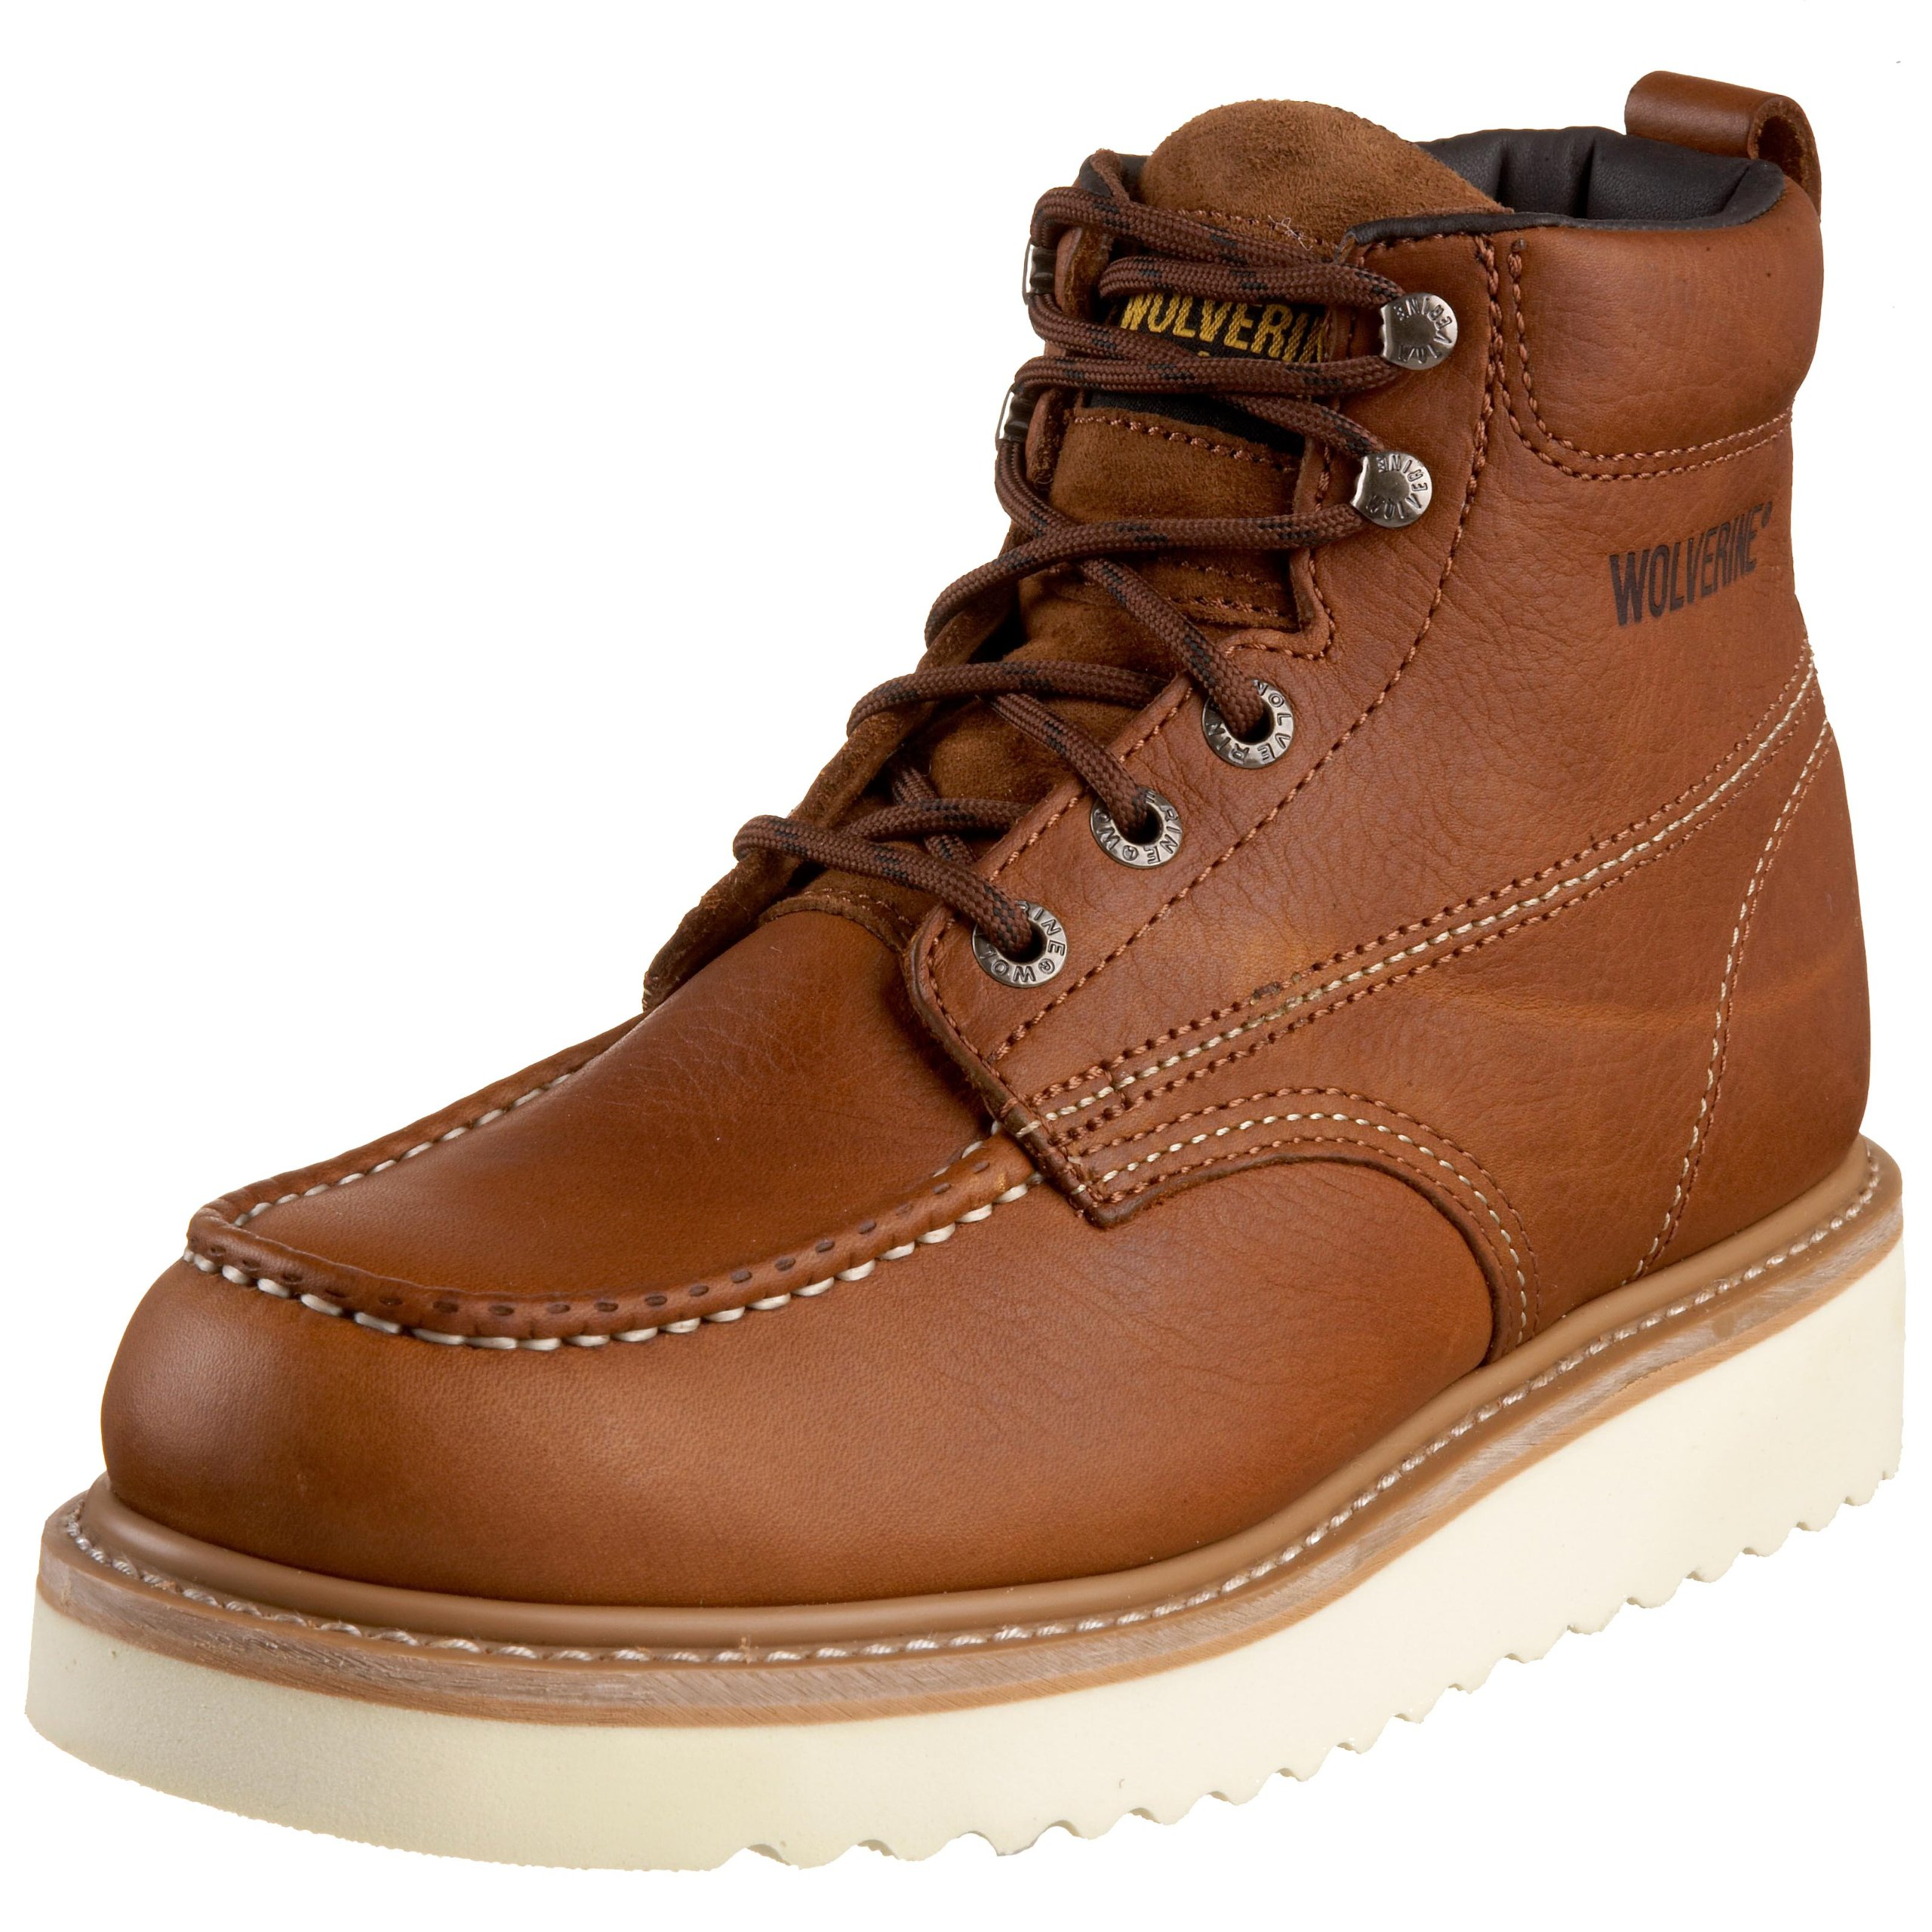 Wolverine Men's W08288 Boot,Brown,12 XW US